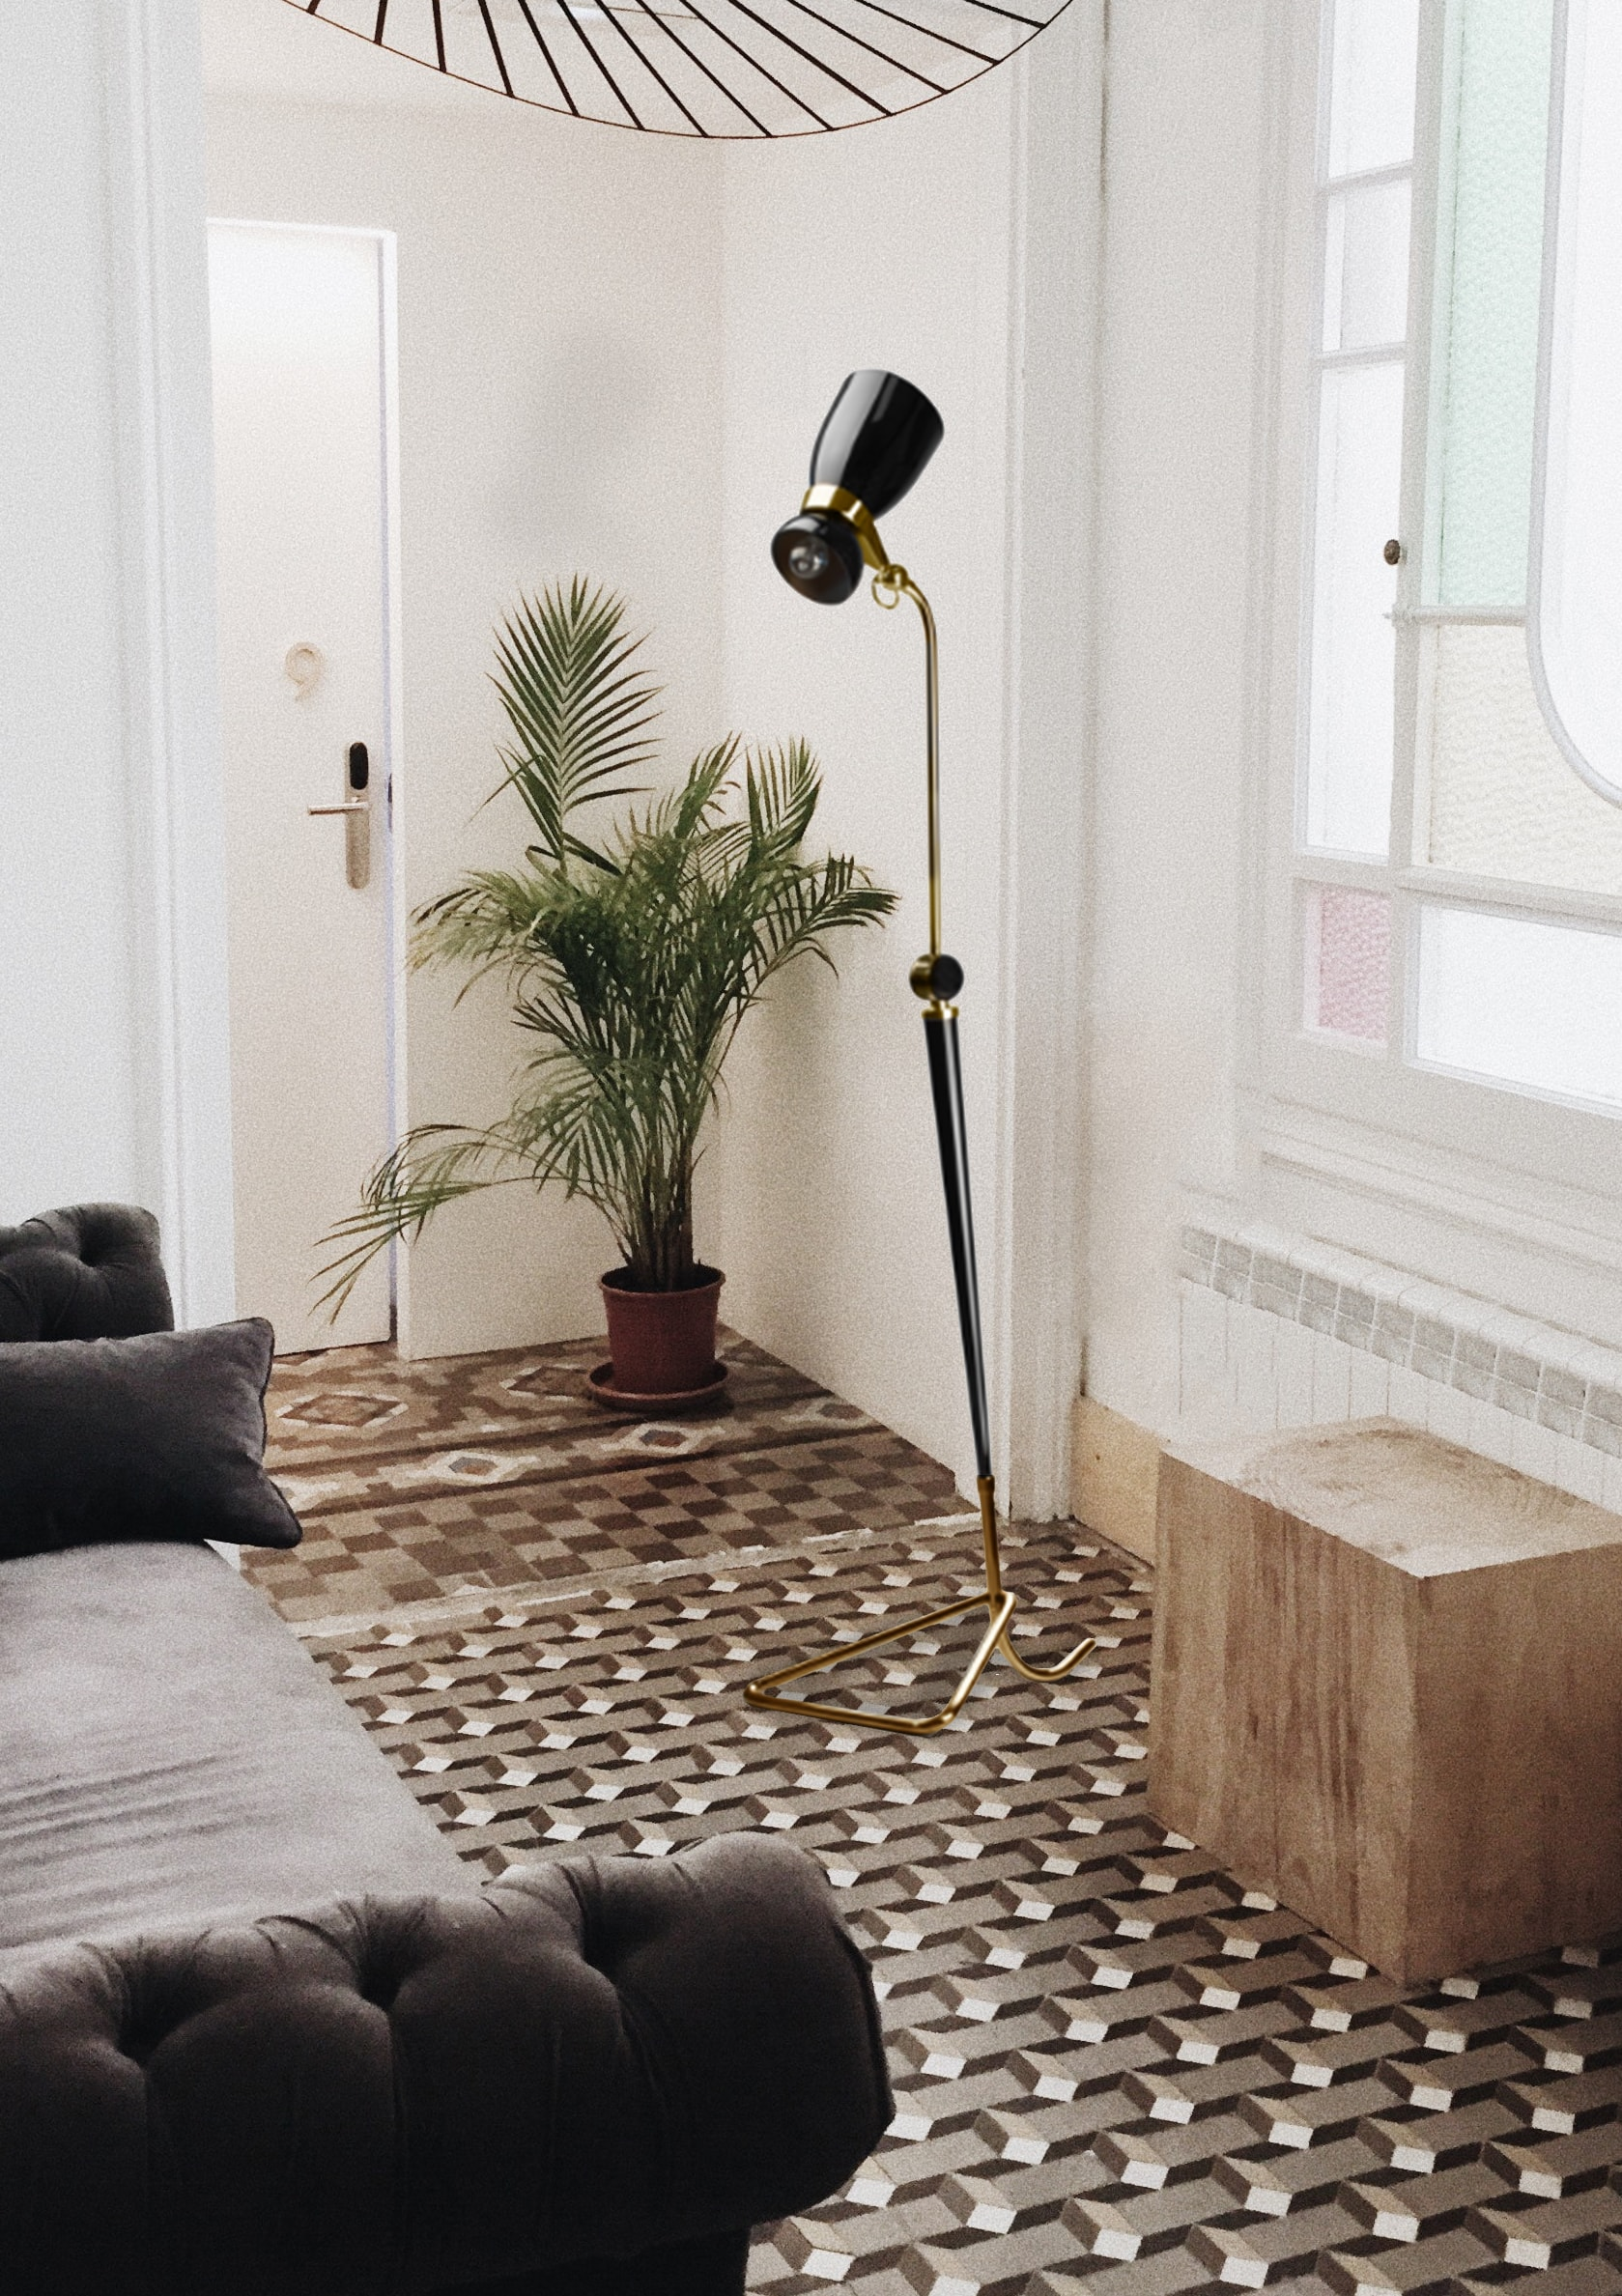 summer sales summer sales Grab Your Favourite Floor Lamp With Summer Sales! Grab Your Favourite Floor Lamp With Summer Sales7